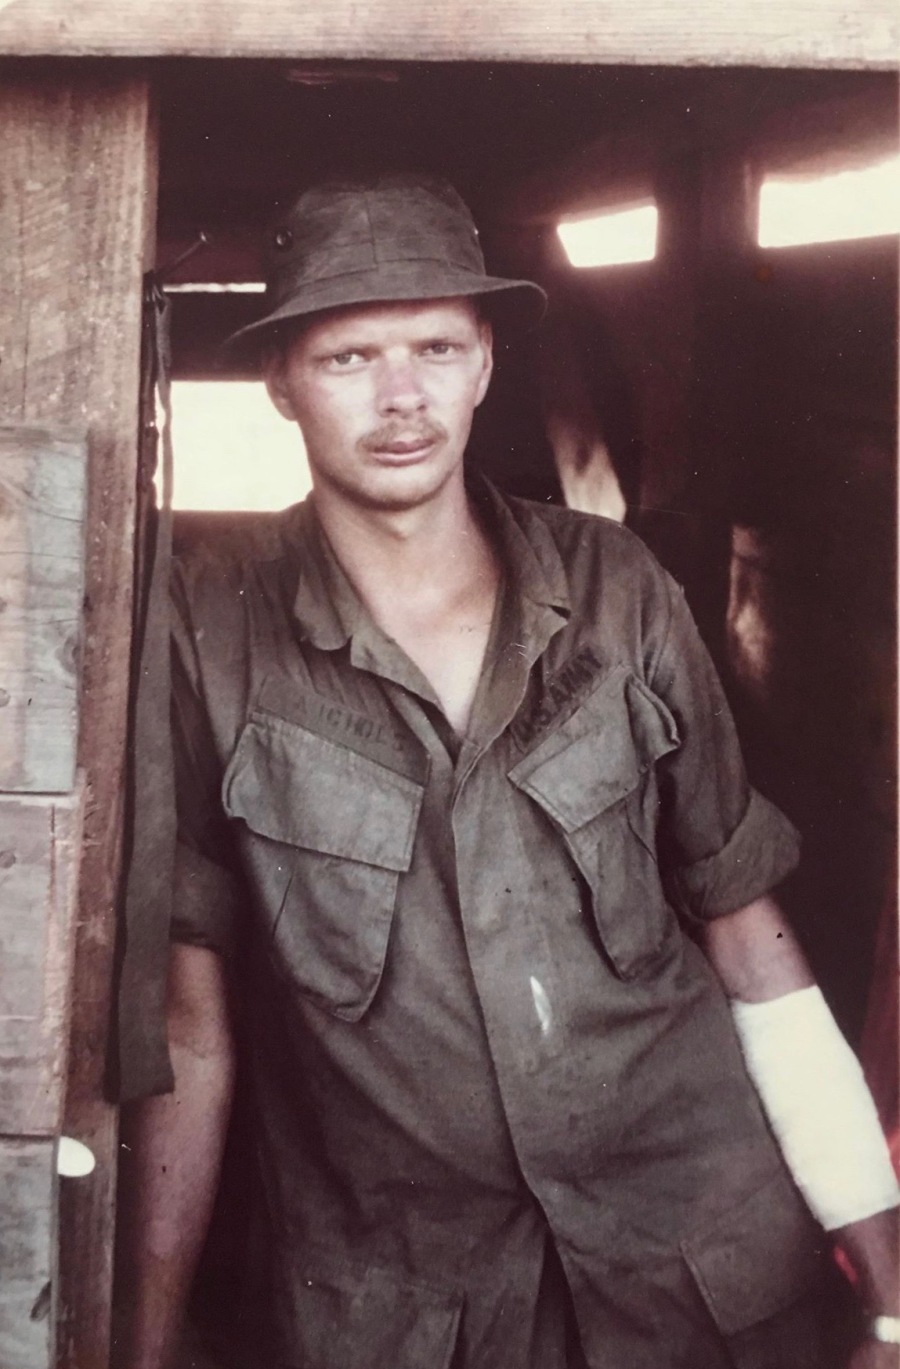 Sgt. Nichols with the Americal Division in Vietnam in 1970. Photo provided